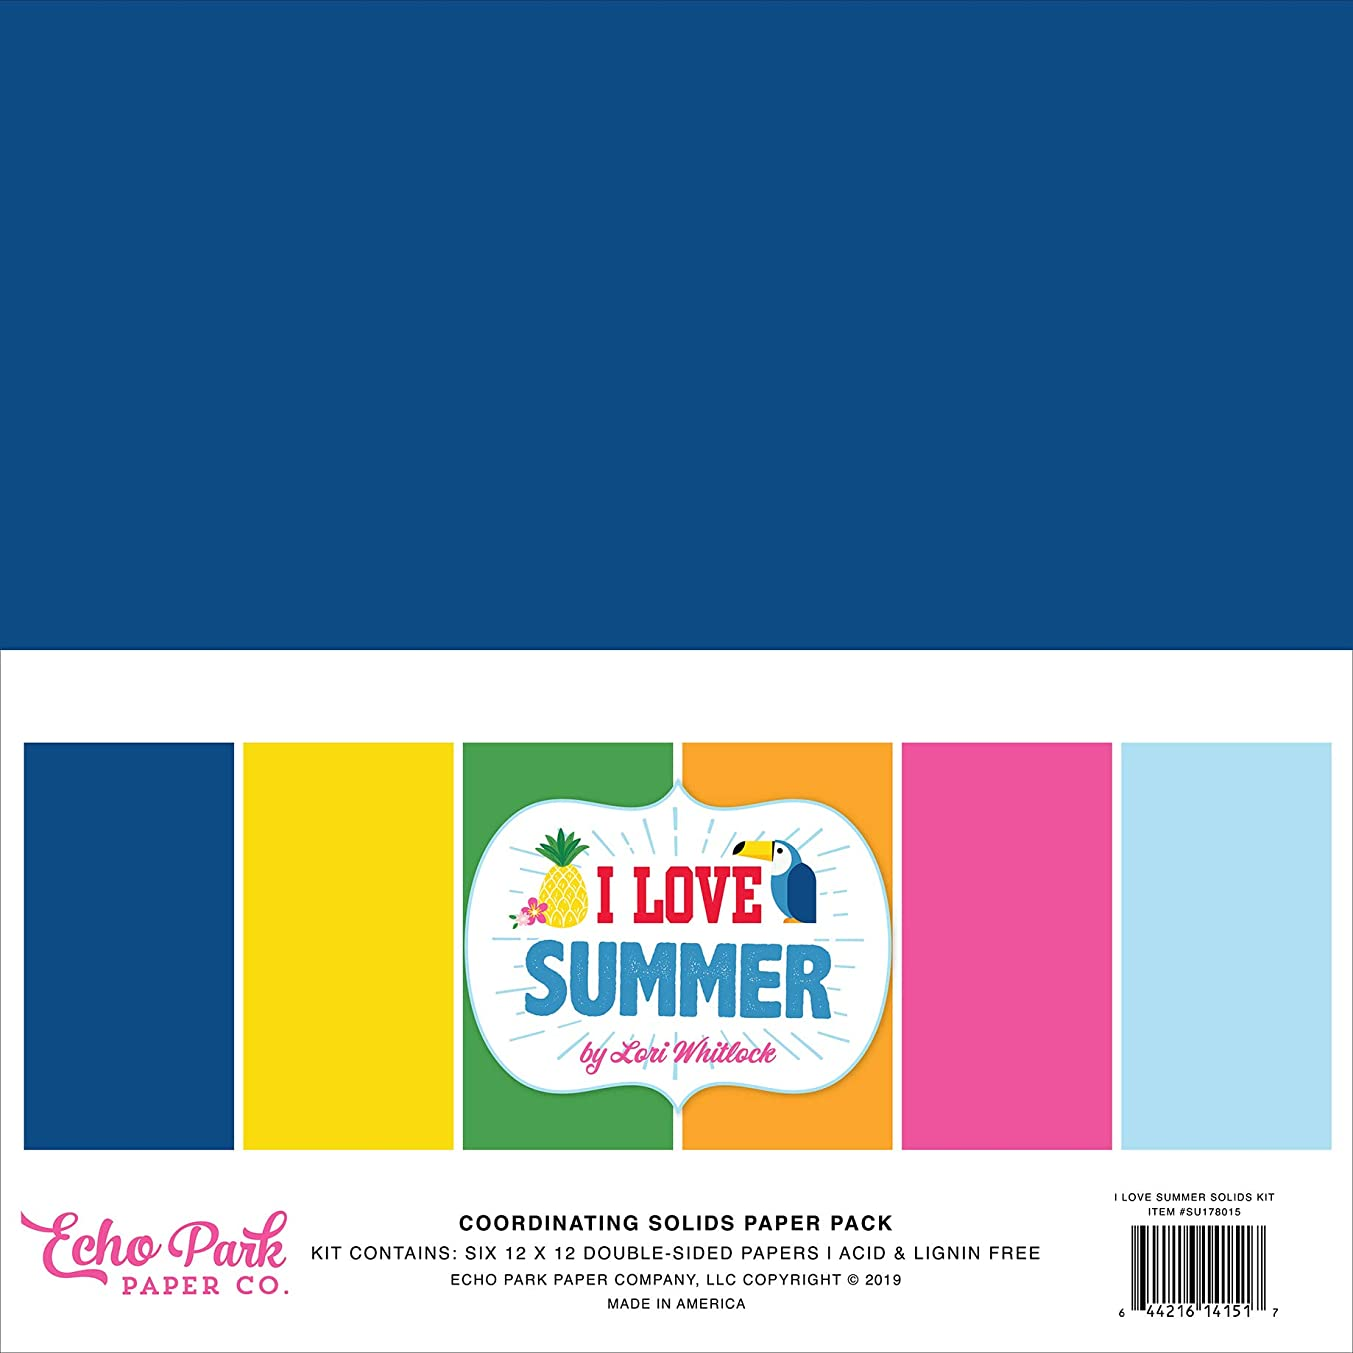 Echo Park Paper Company SU178015 I I Love Summer Solids Kit Paper, Pink, Teal, Green, Yellow, Blue, red